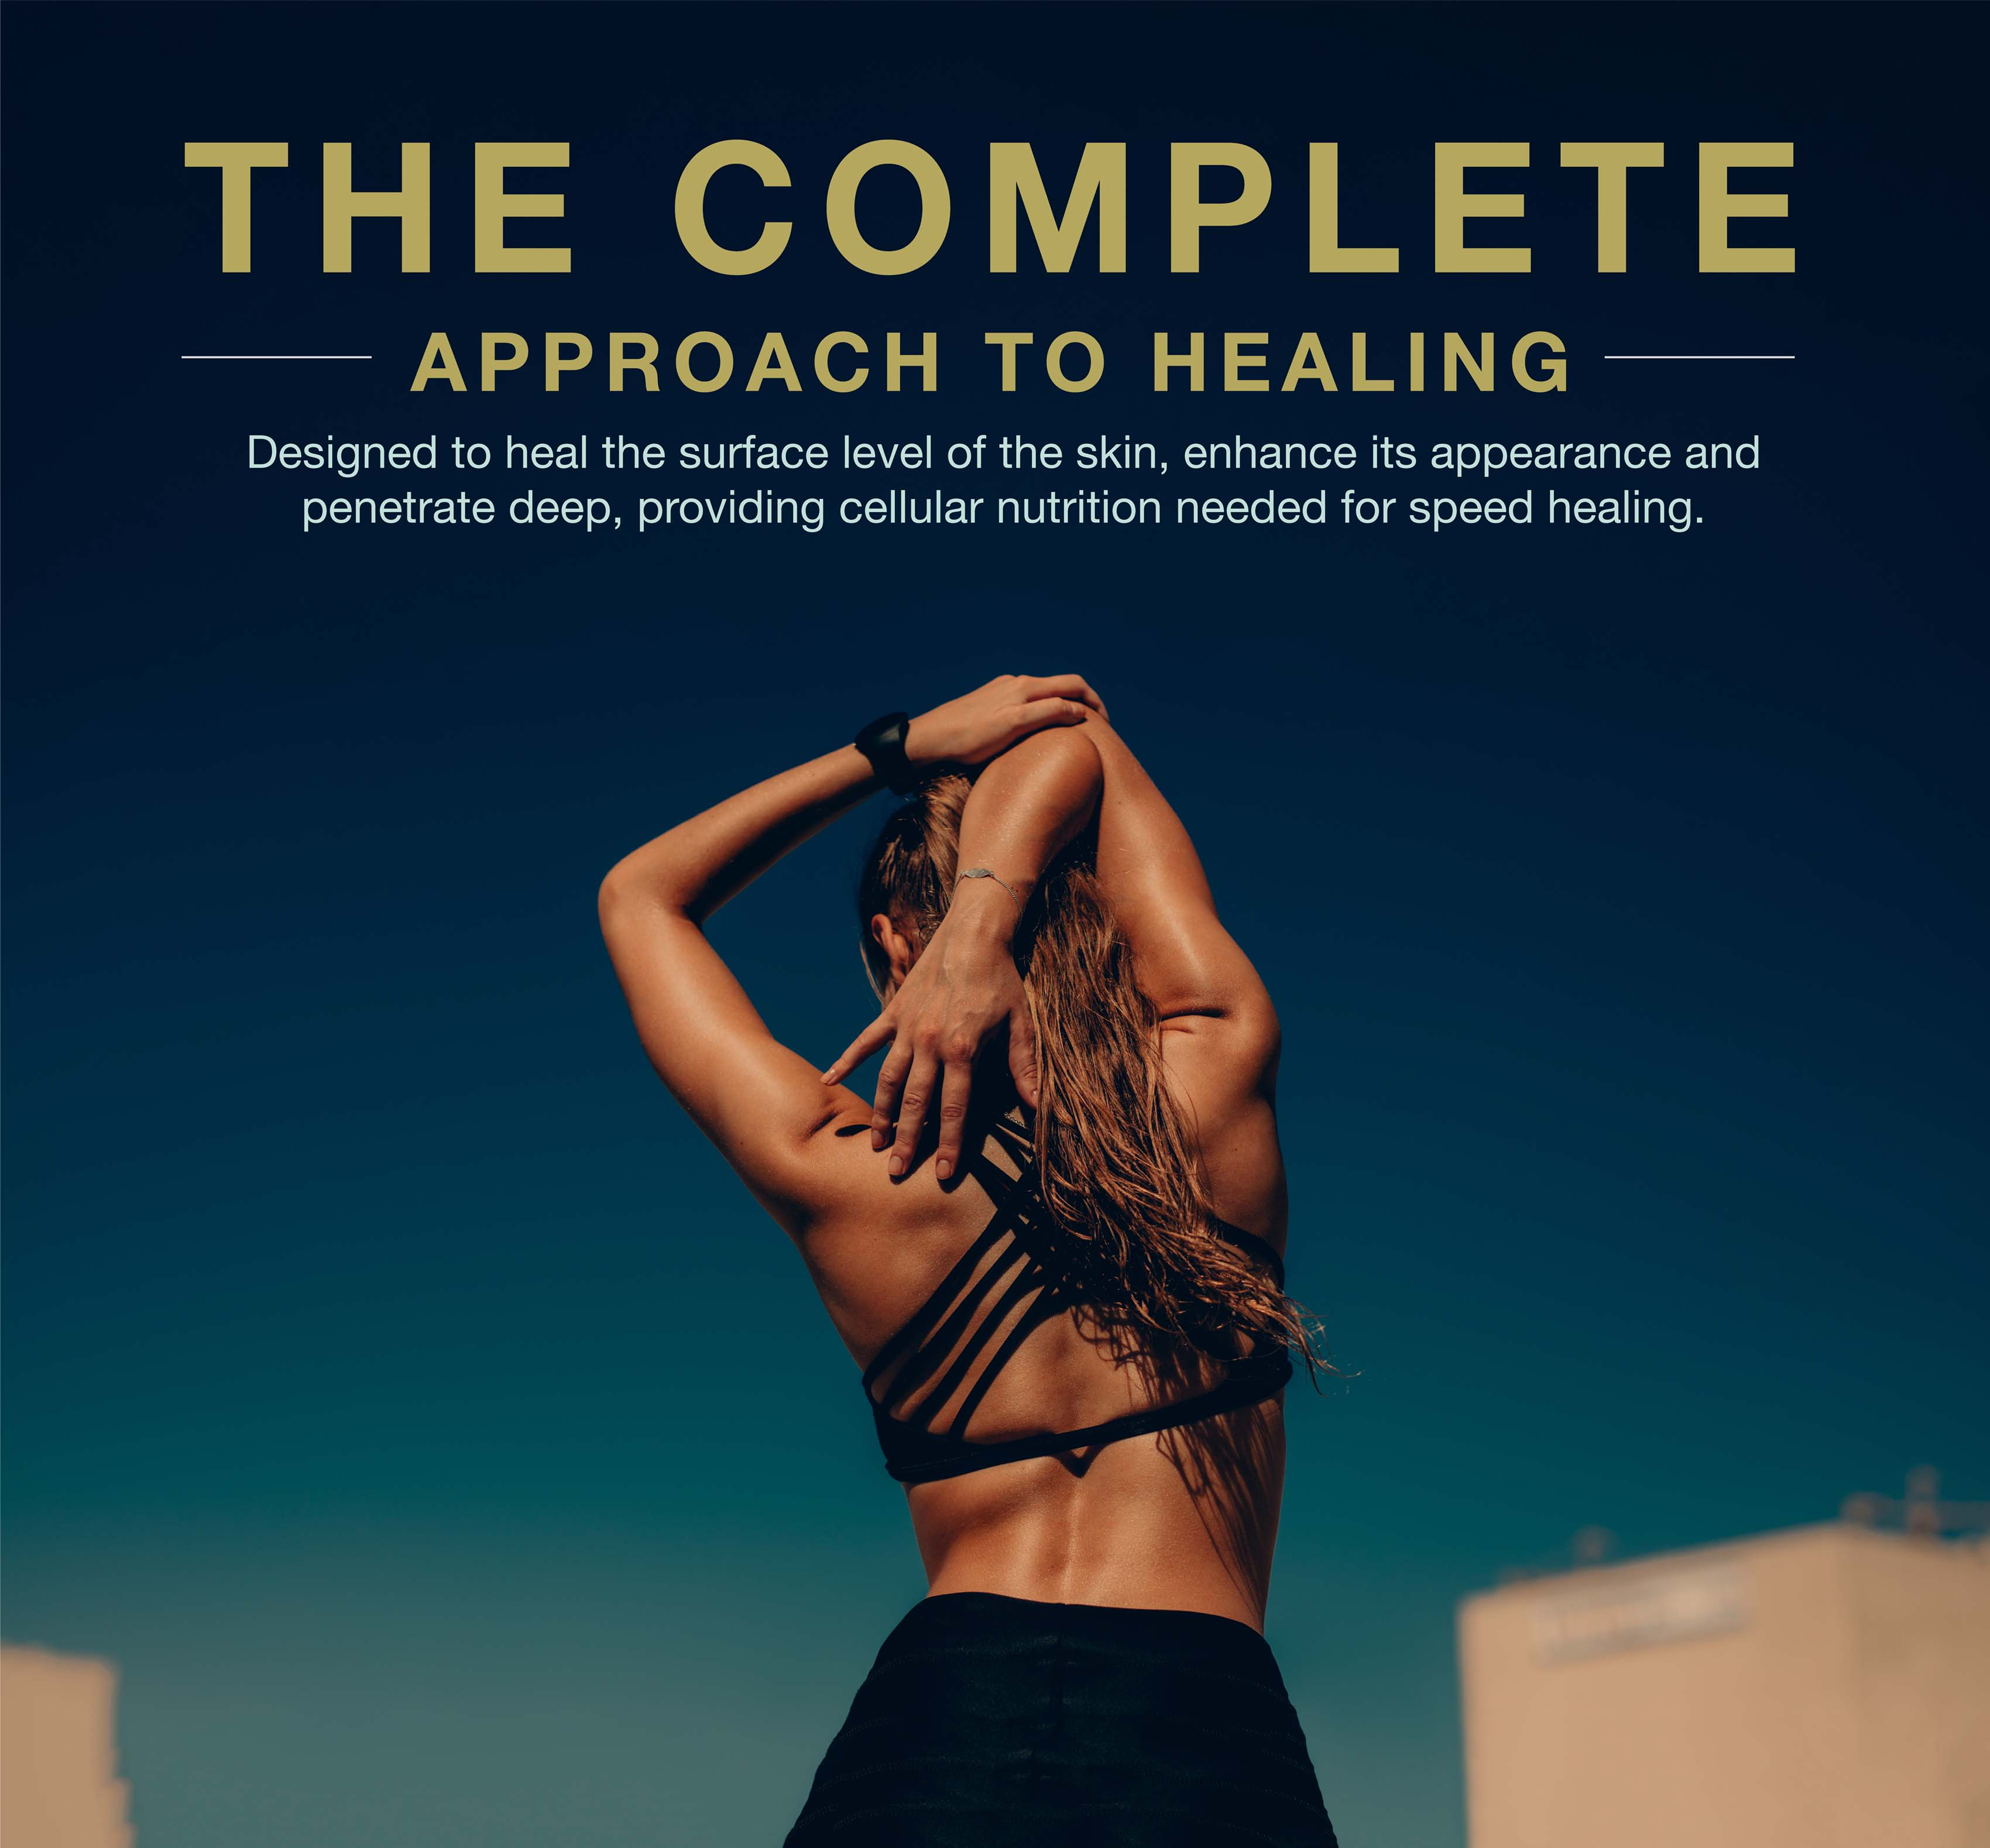 The complete approach to healing, heal-all is designed to help the deep skin and provide cellular nutrition for healing.